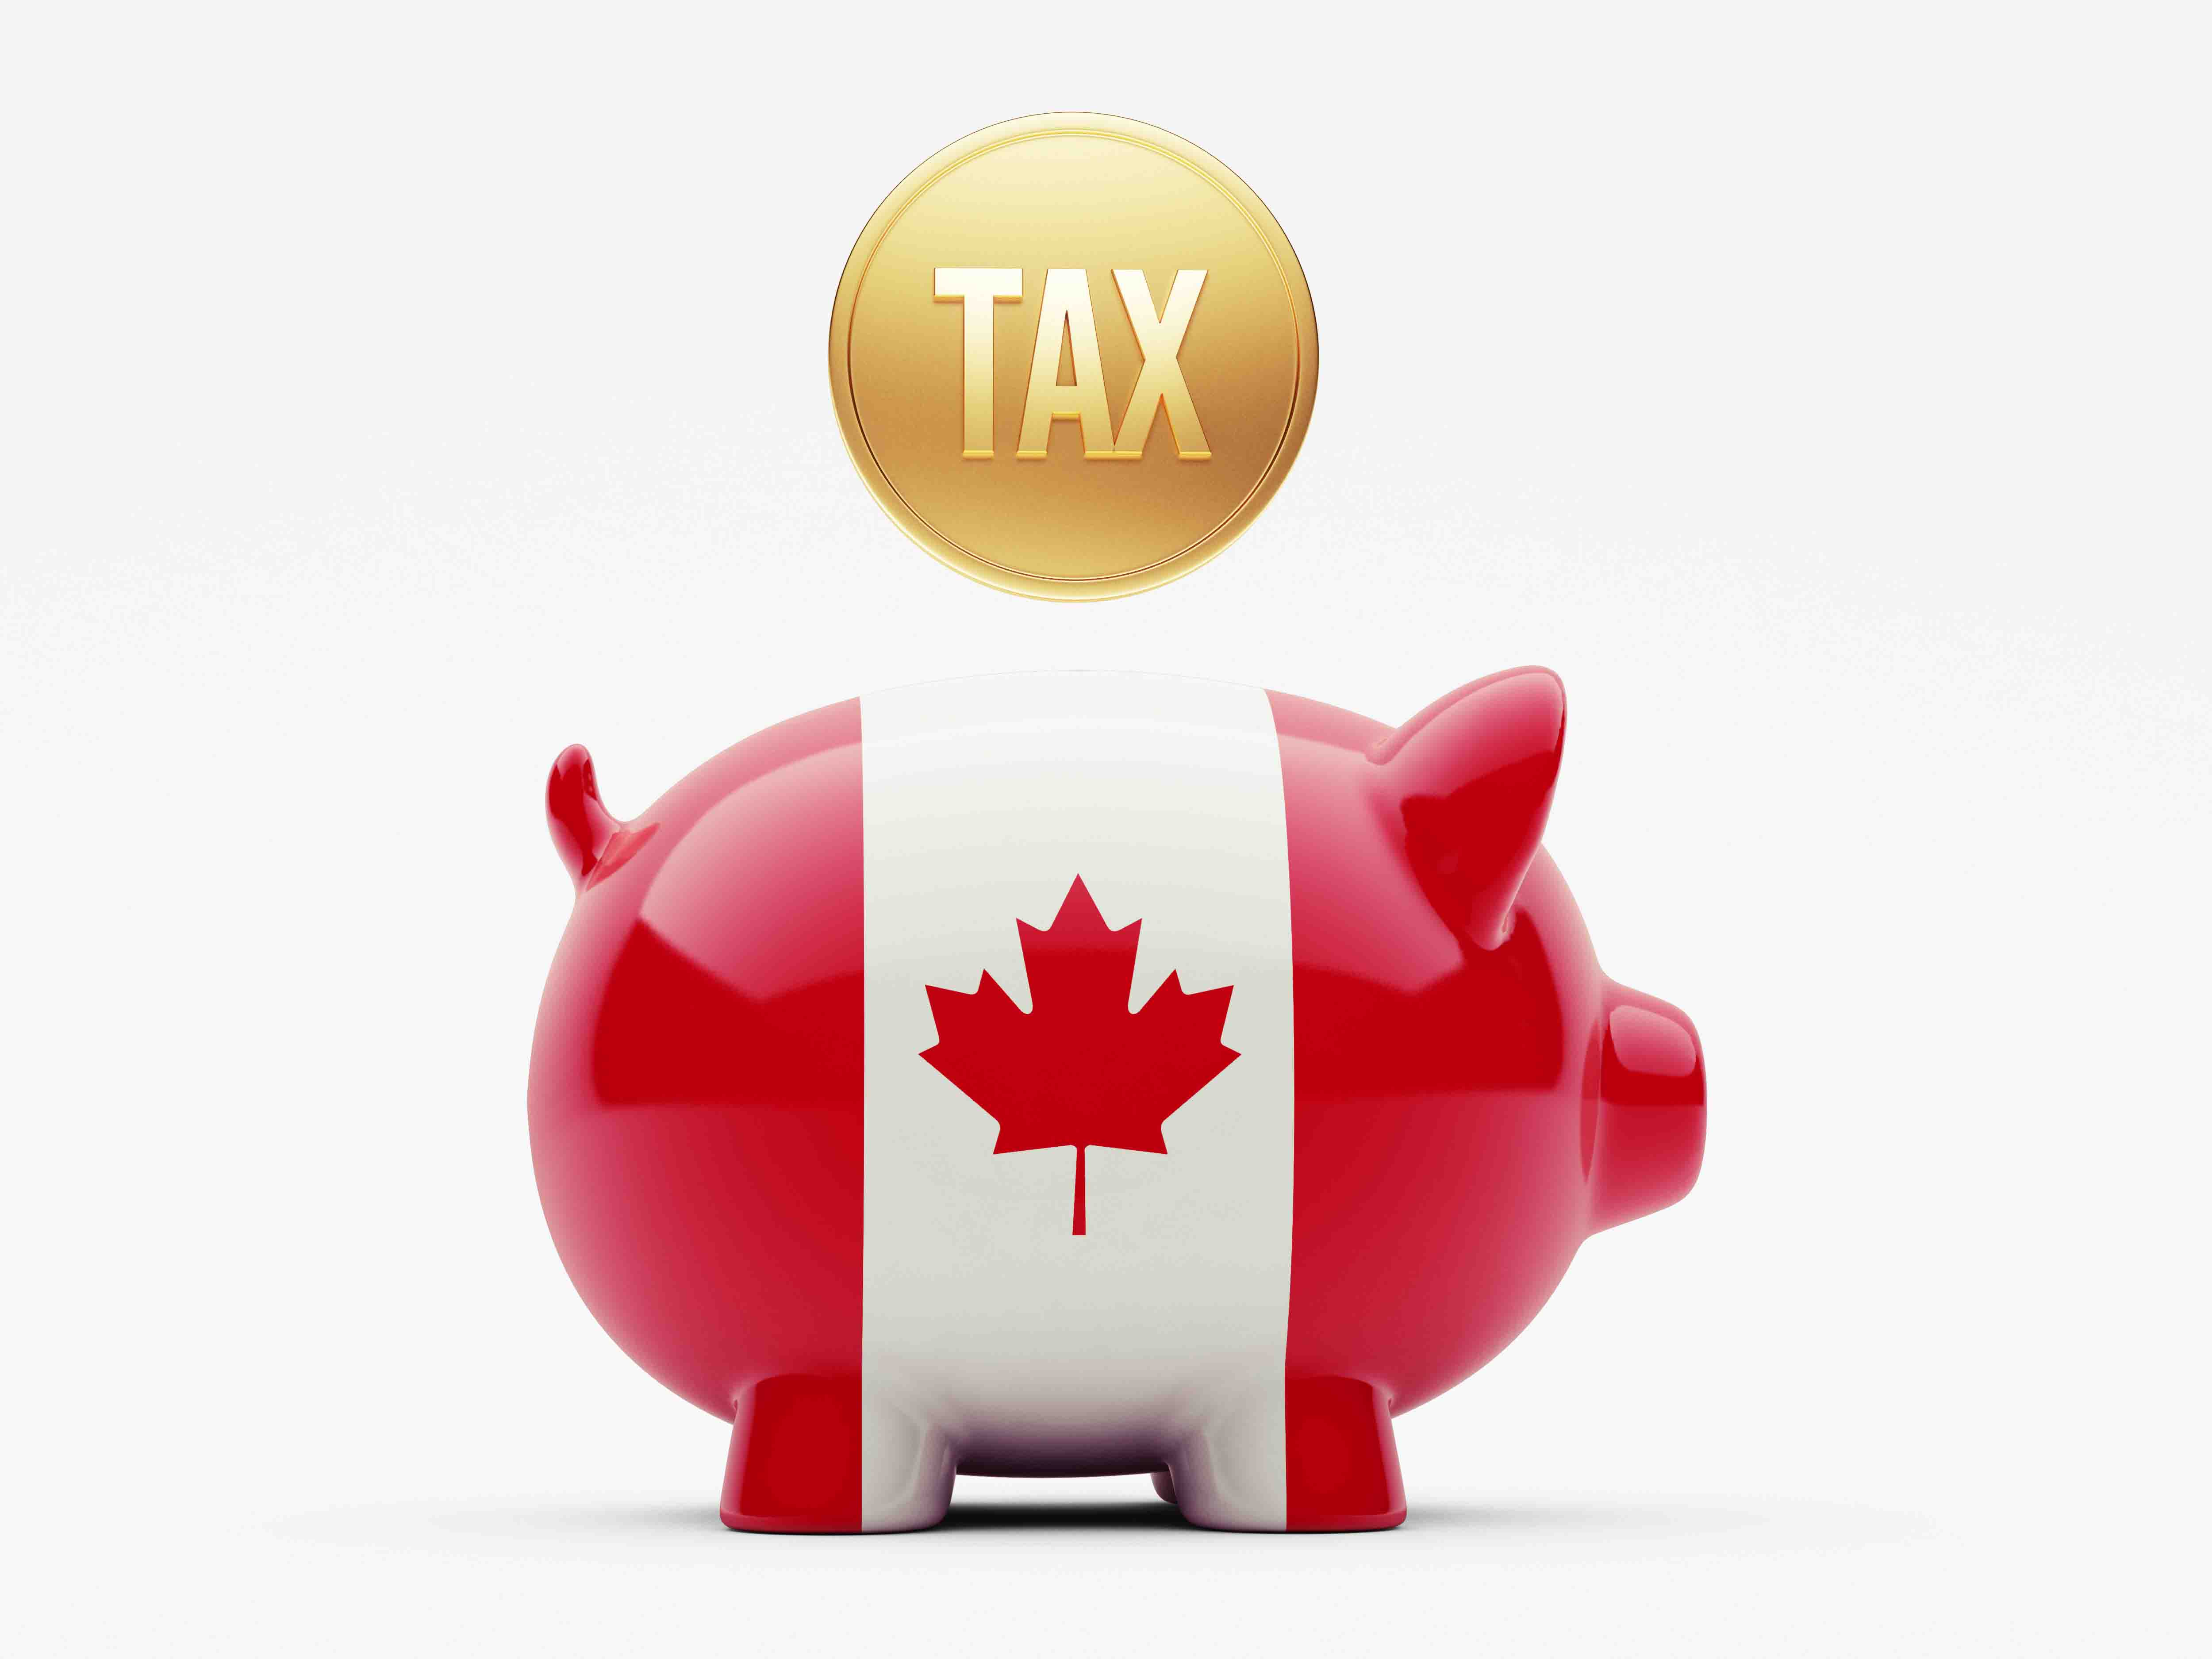 Doing Business in Canada: From Tax Compliance to Strategic Tax Planning